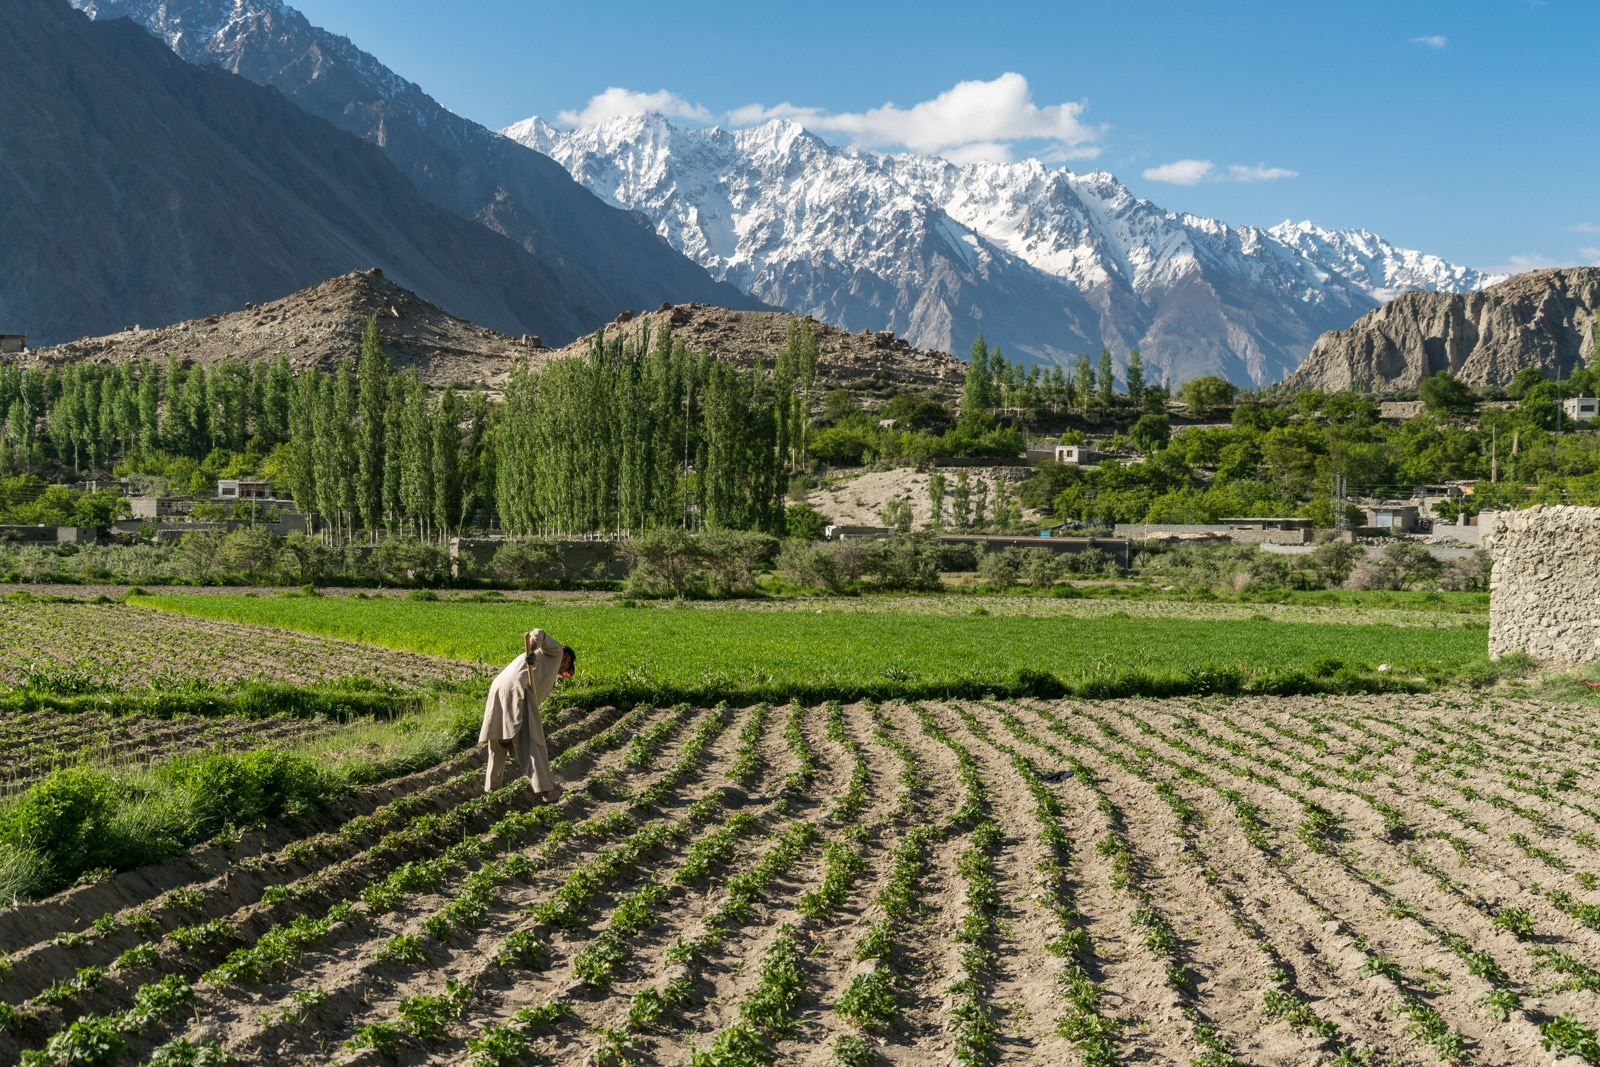 Homestay in Pakistan - A man working his farm field in Ghulkin early in the morning - Lost With Purpose travel blog